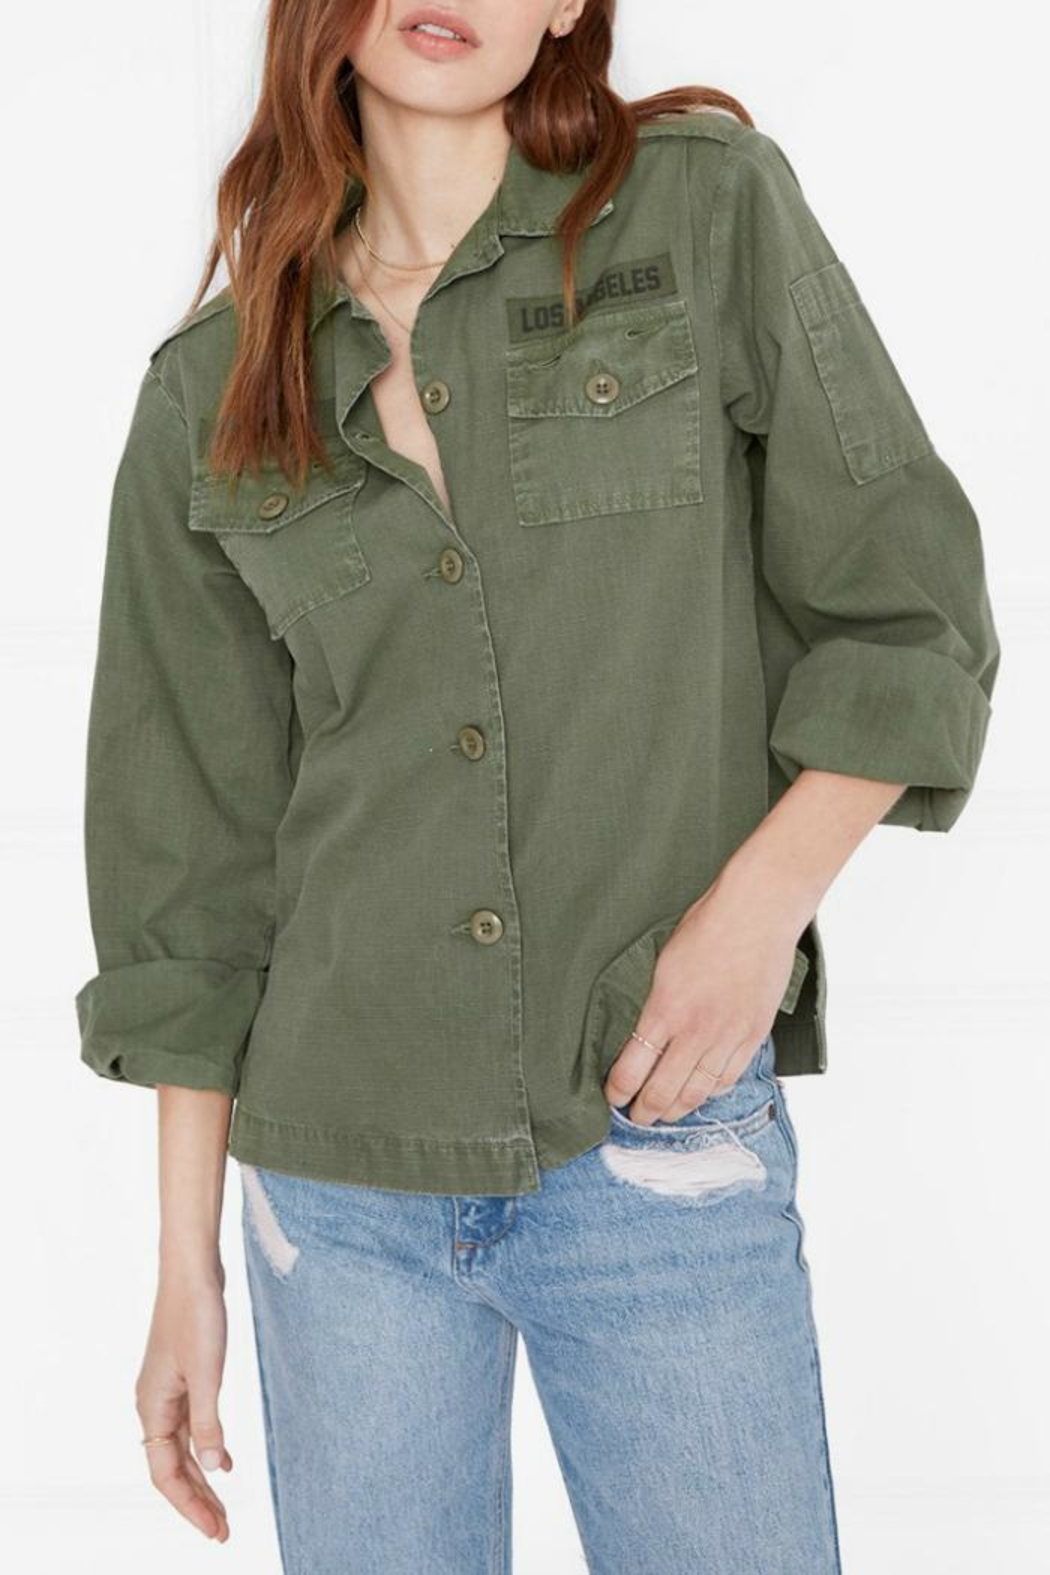 a418a6a23f Anine Bing Military Shirt from Canada by Era Style Loft — Shoptiques